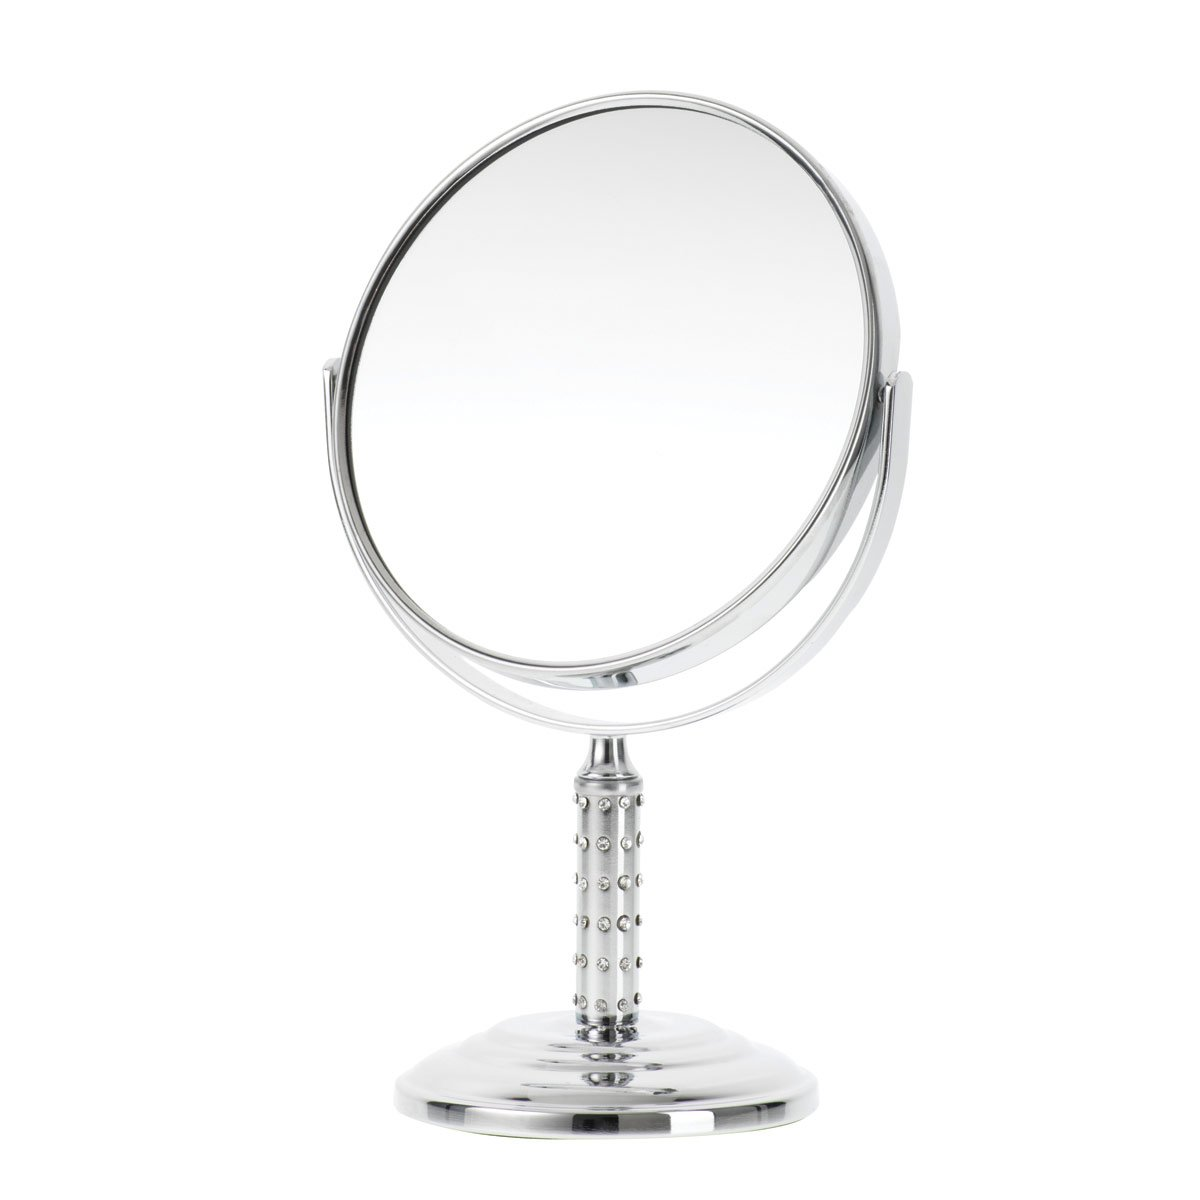 Danielle 15.2cm Double Sided Mirror x 5 Magnified D629